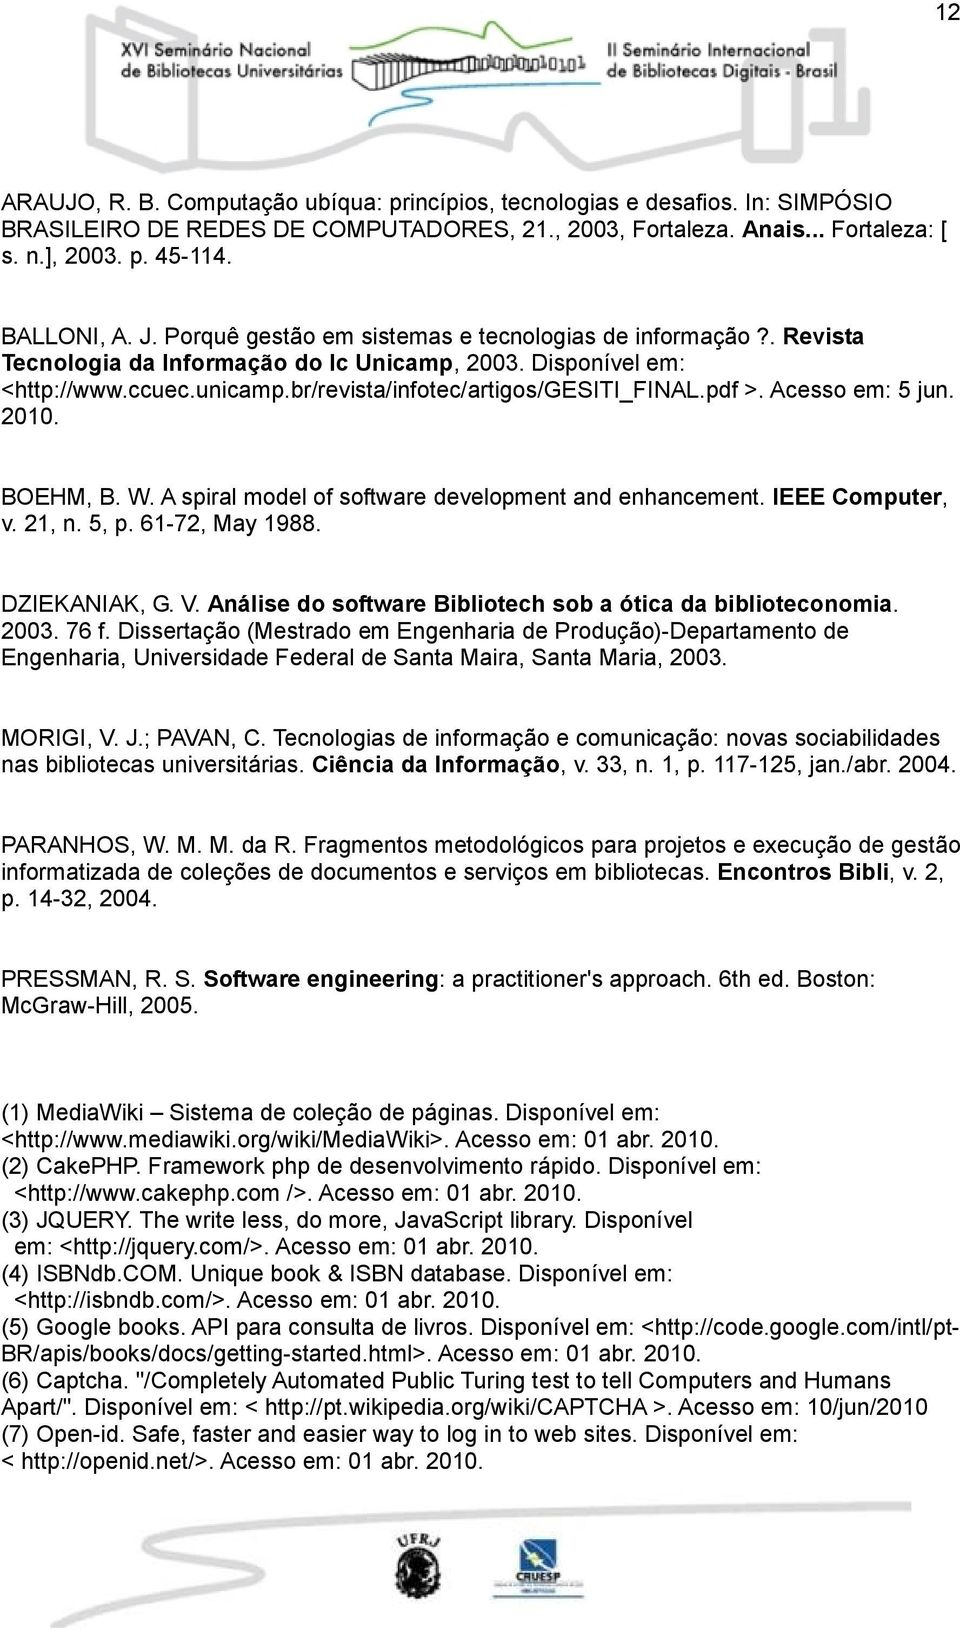 br/revista/infotec/artigos/gesiti_final.pdf >. Acesso em: 5 jun. 2010. BOEHM, B. W. A spiral model of software development and enhancement. IEEE Computer, v. 21, n. 5, p. 61-72, May 1988.